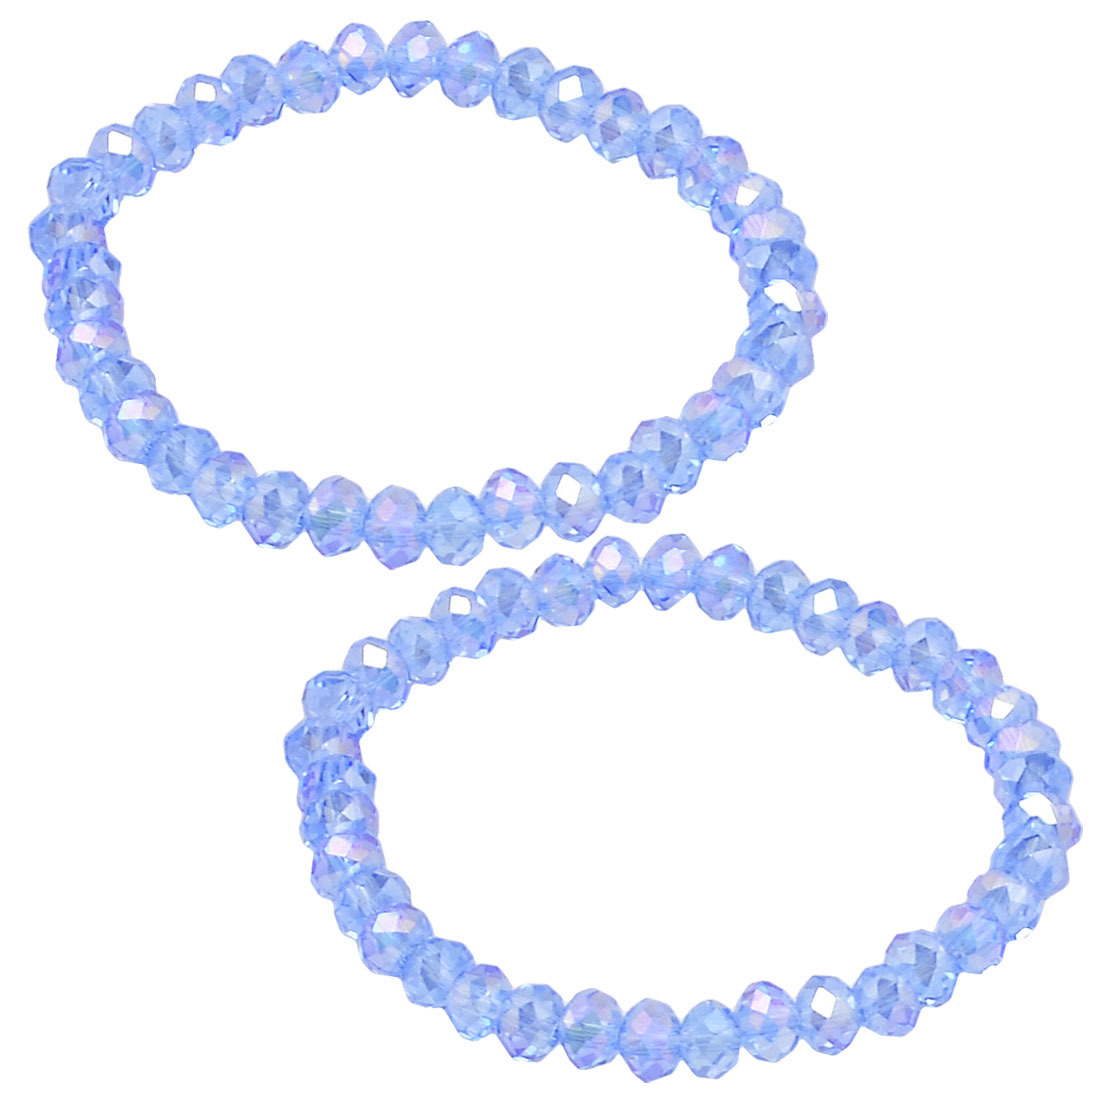 2 x Glitter Blue Faux Crystal Beads Stretchy Bracelets Bangle for Woman